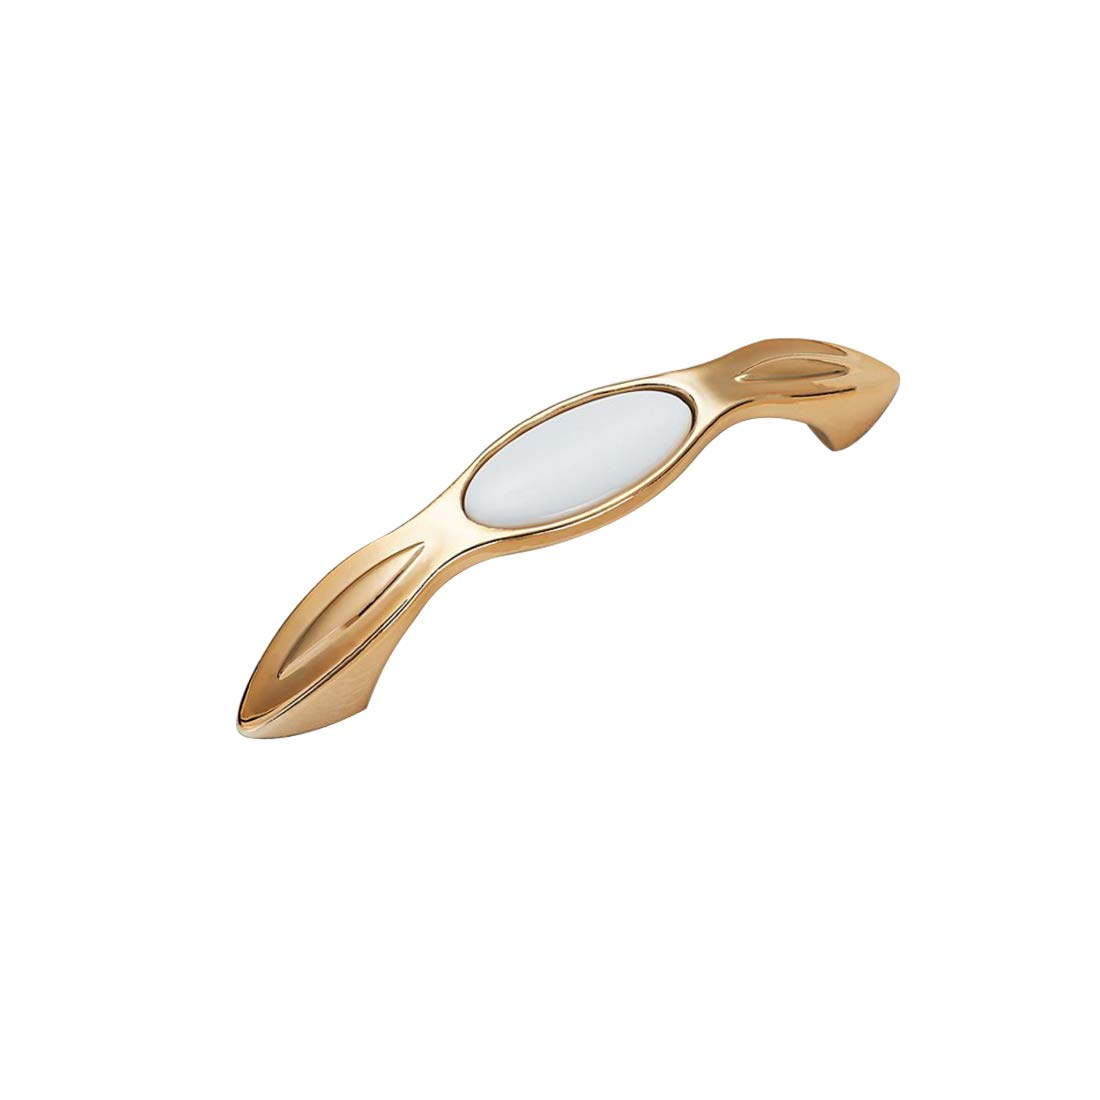 Autoly Cabinet Hardware Handle Pull Dresser Drawer Handle Pulls 2 Pack 3.8 Hole Centers 96mm Gold-White 1722-96K